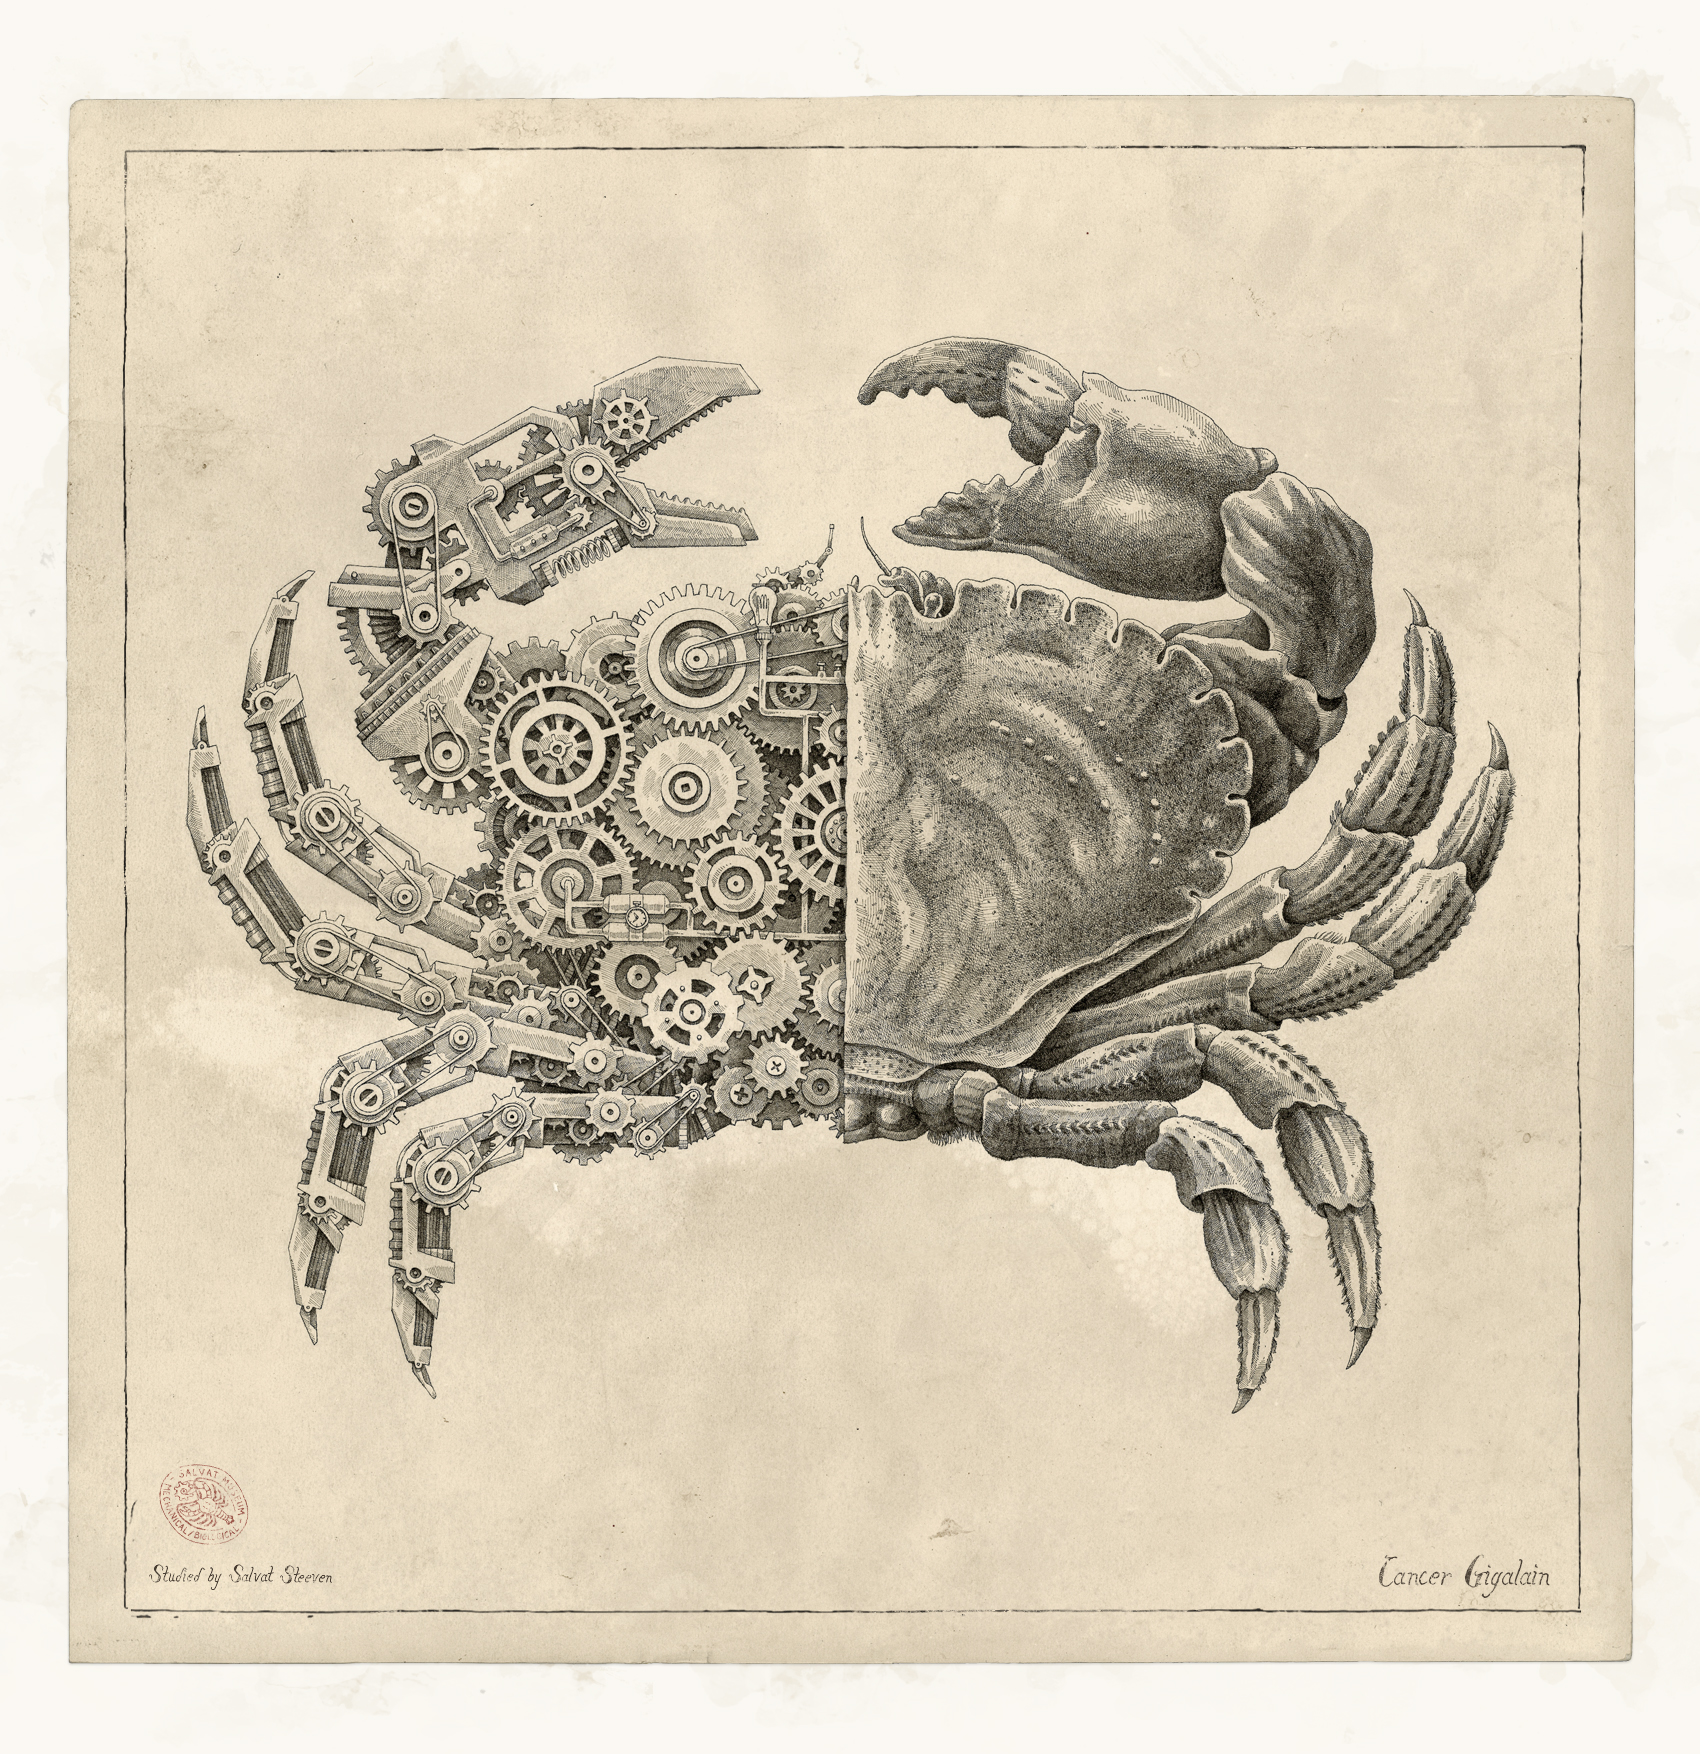 Crustacean Study by Steeven Salvat